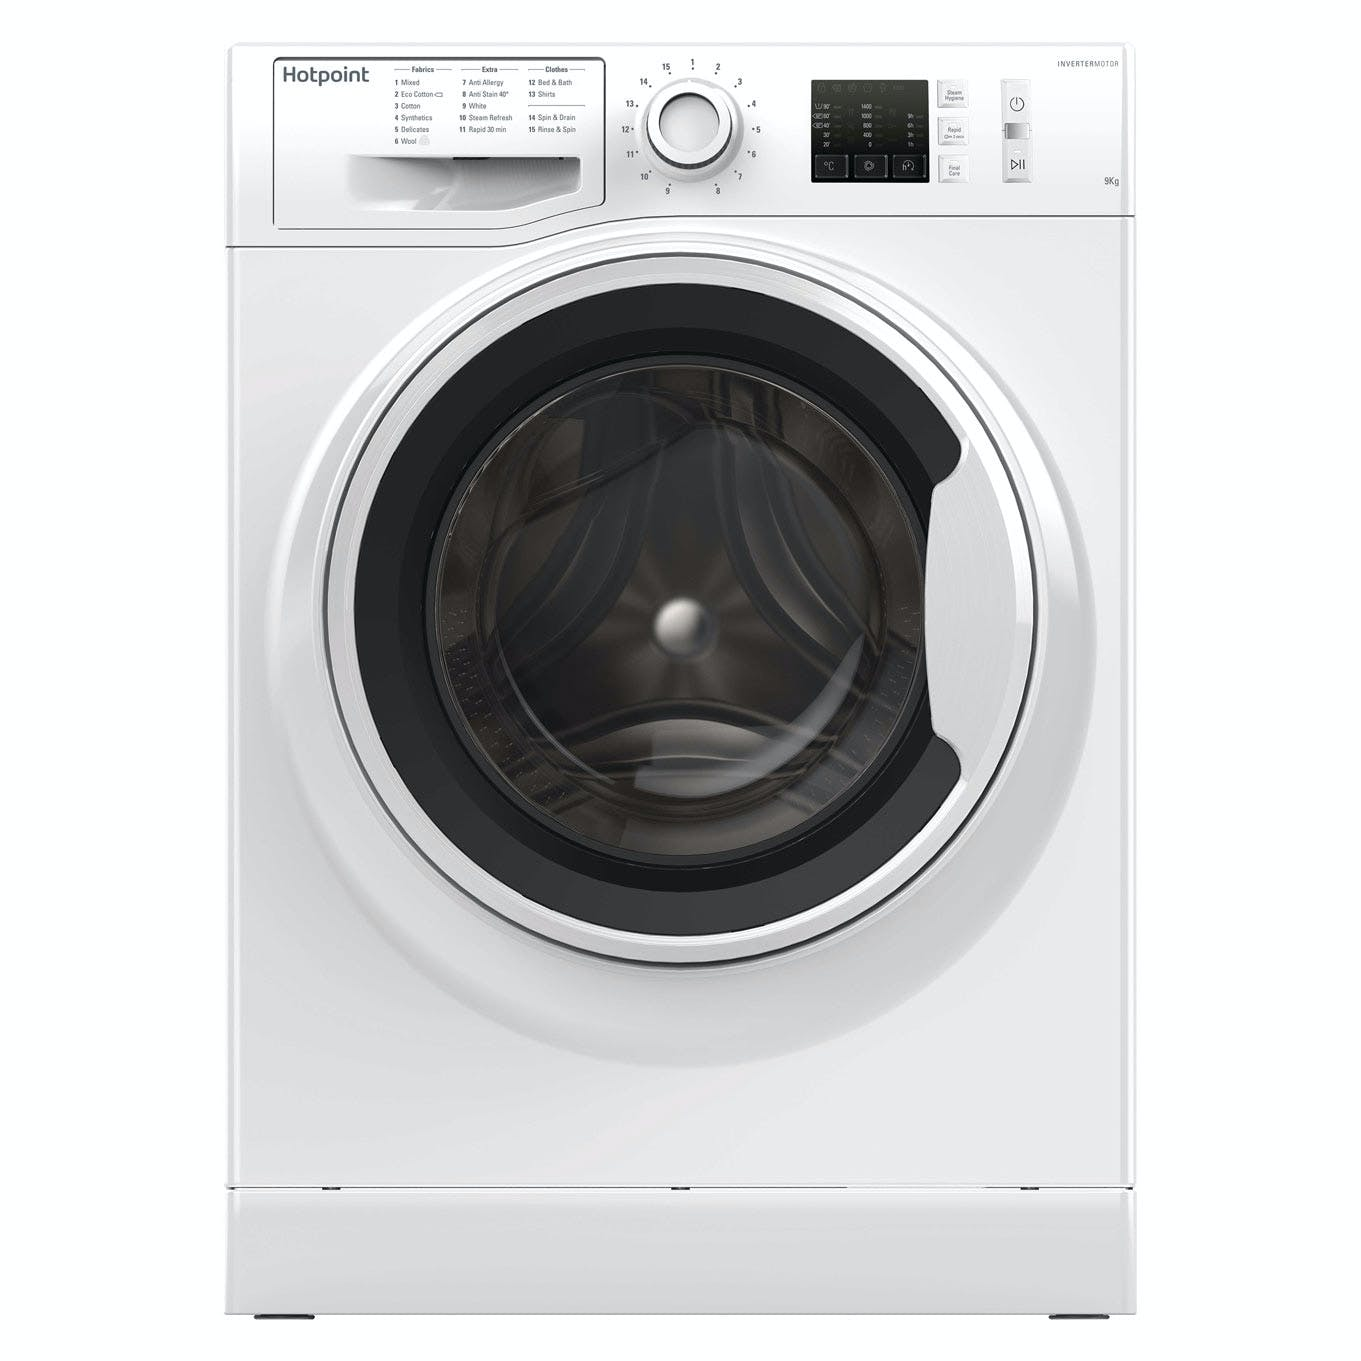 Hotpoint NM10944WW